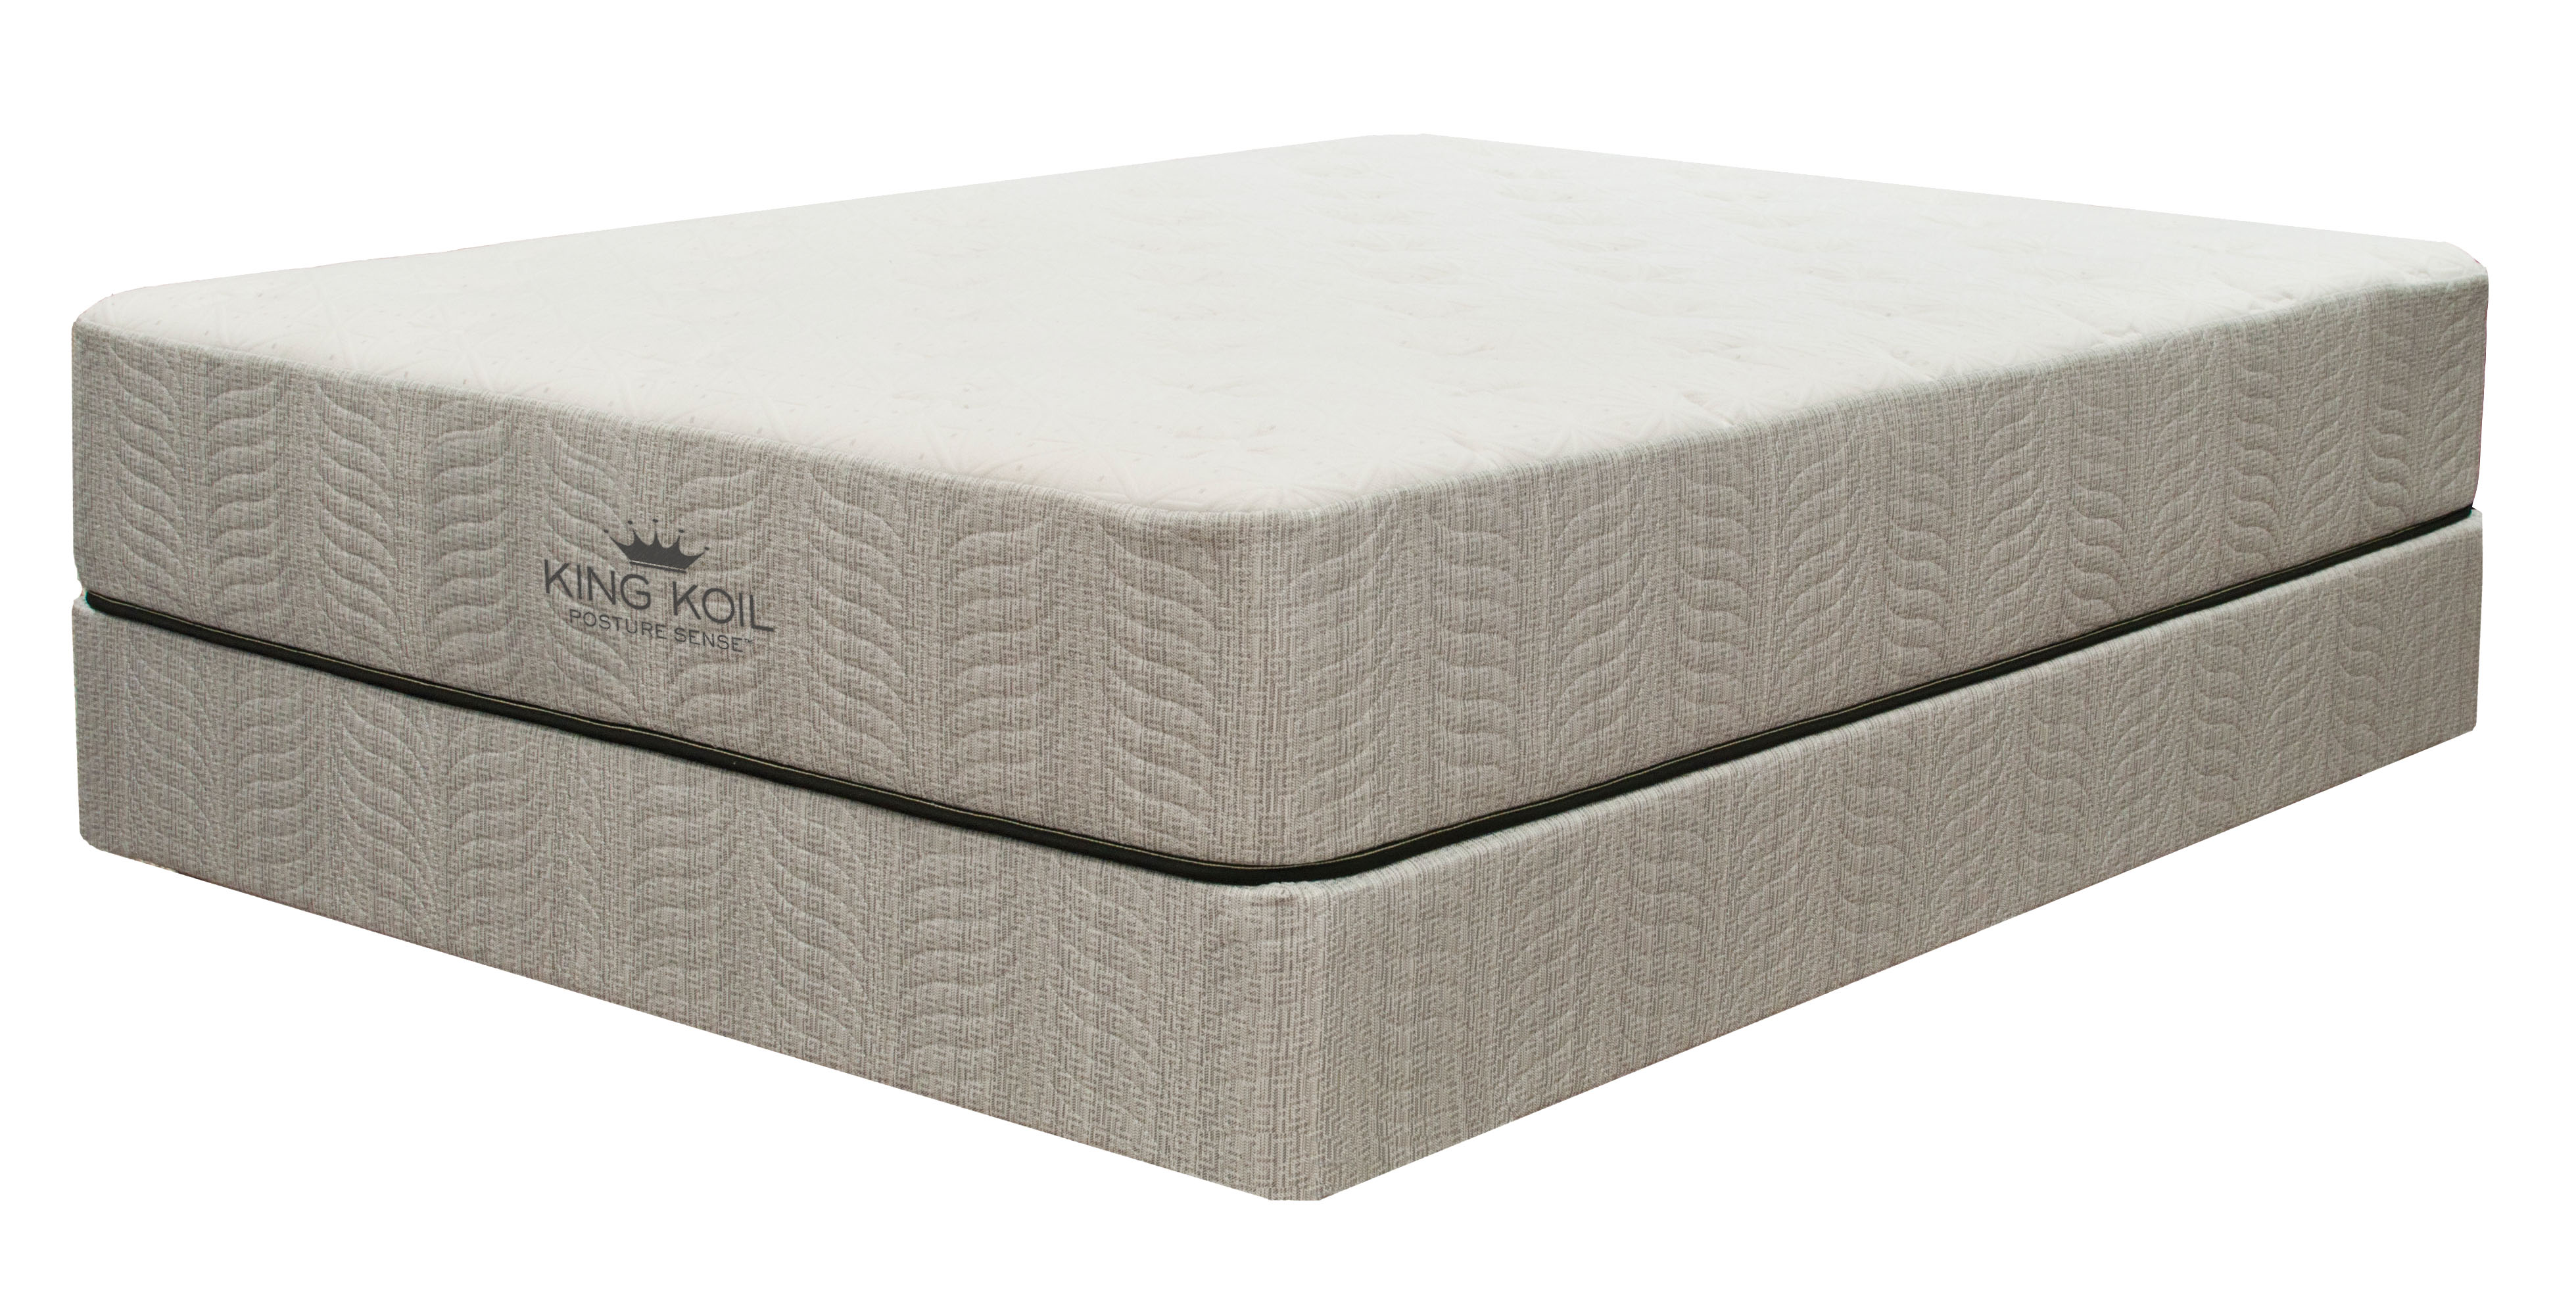 Restonic Mattress Models King Koil Series - Mattress Reviews - GoodBed.com